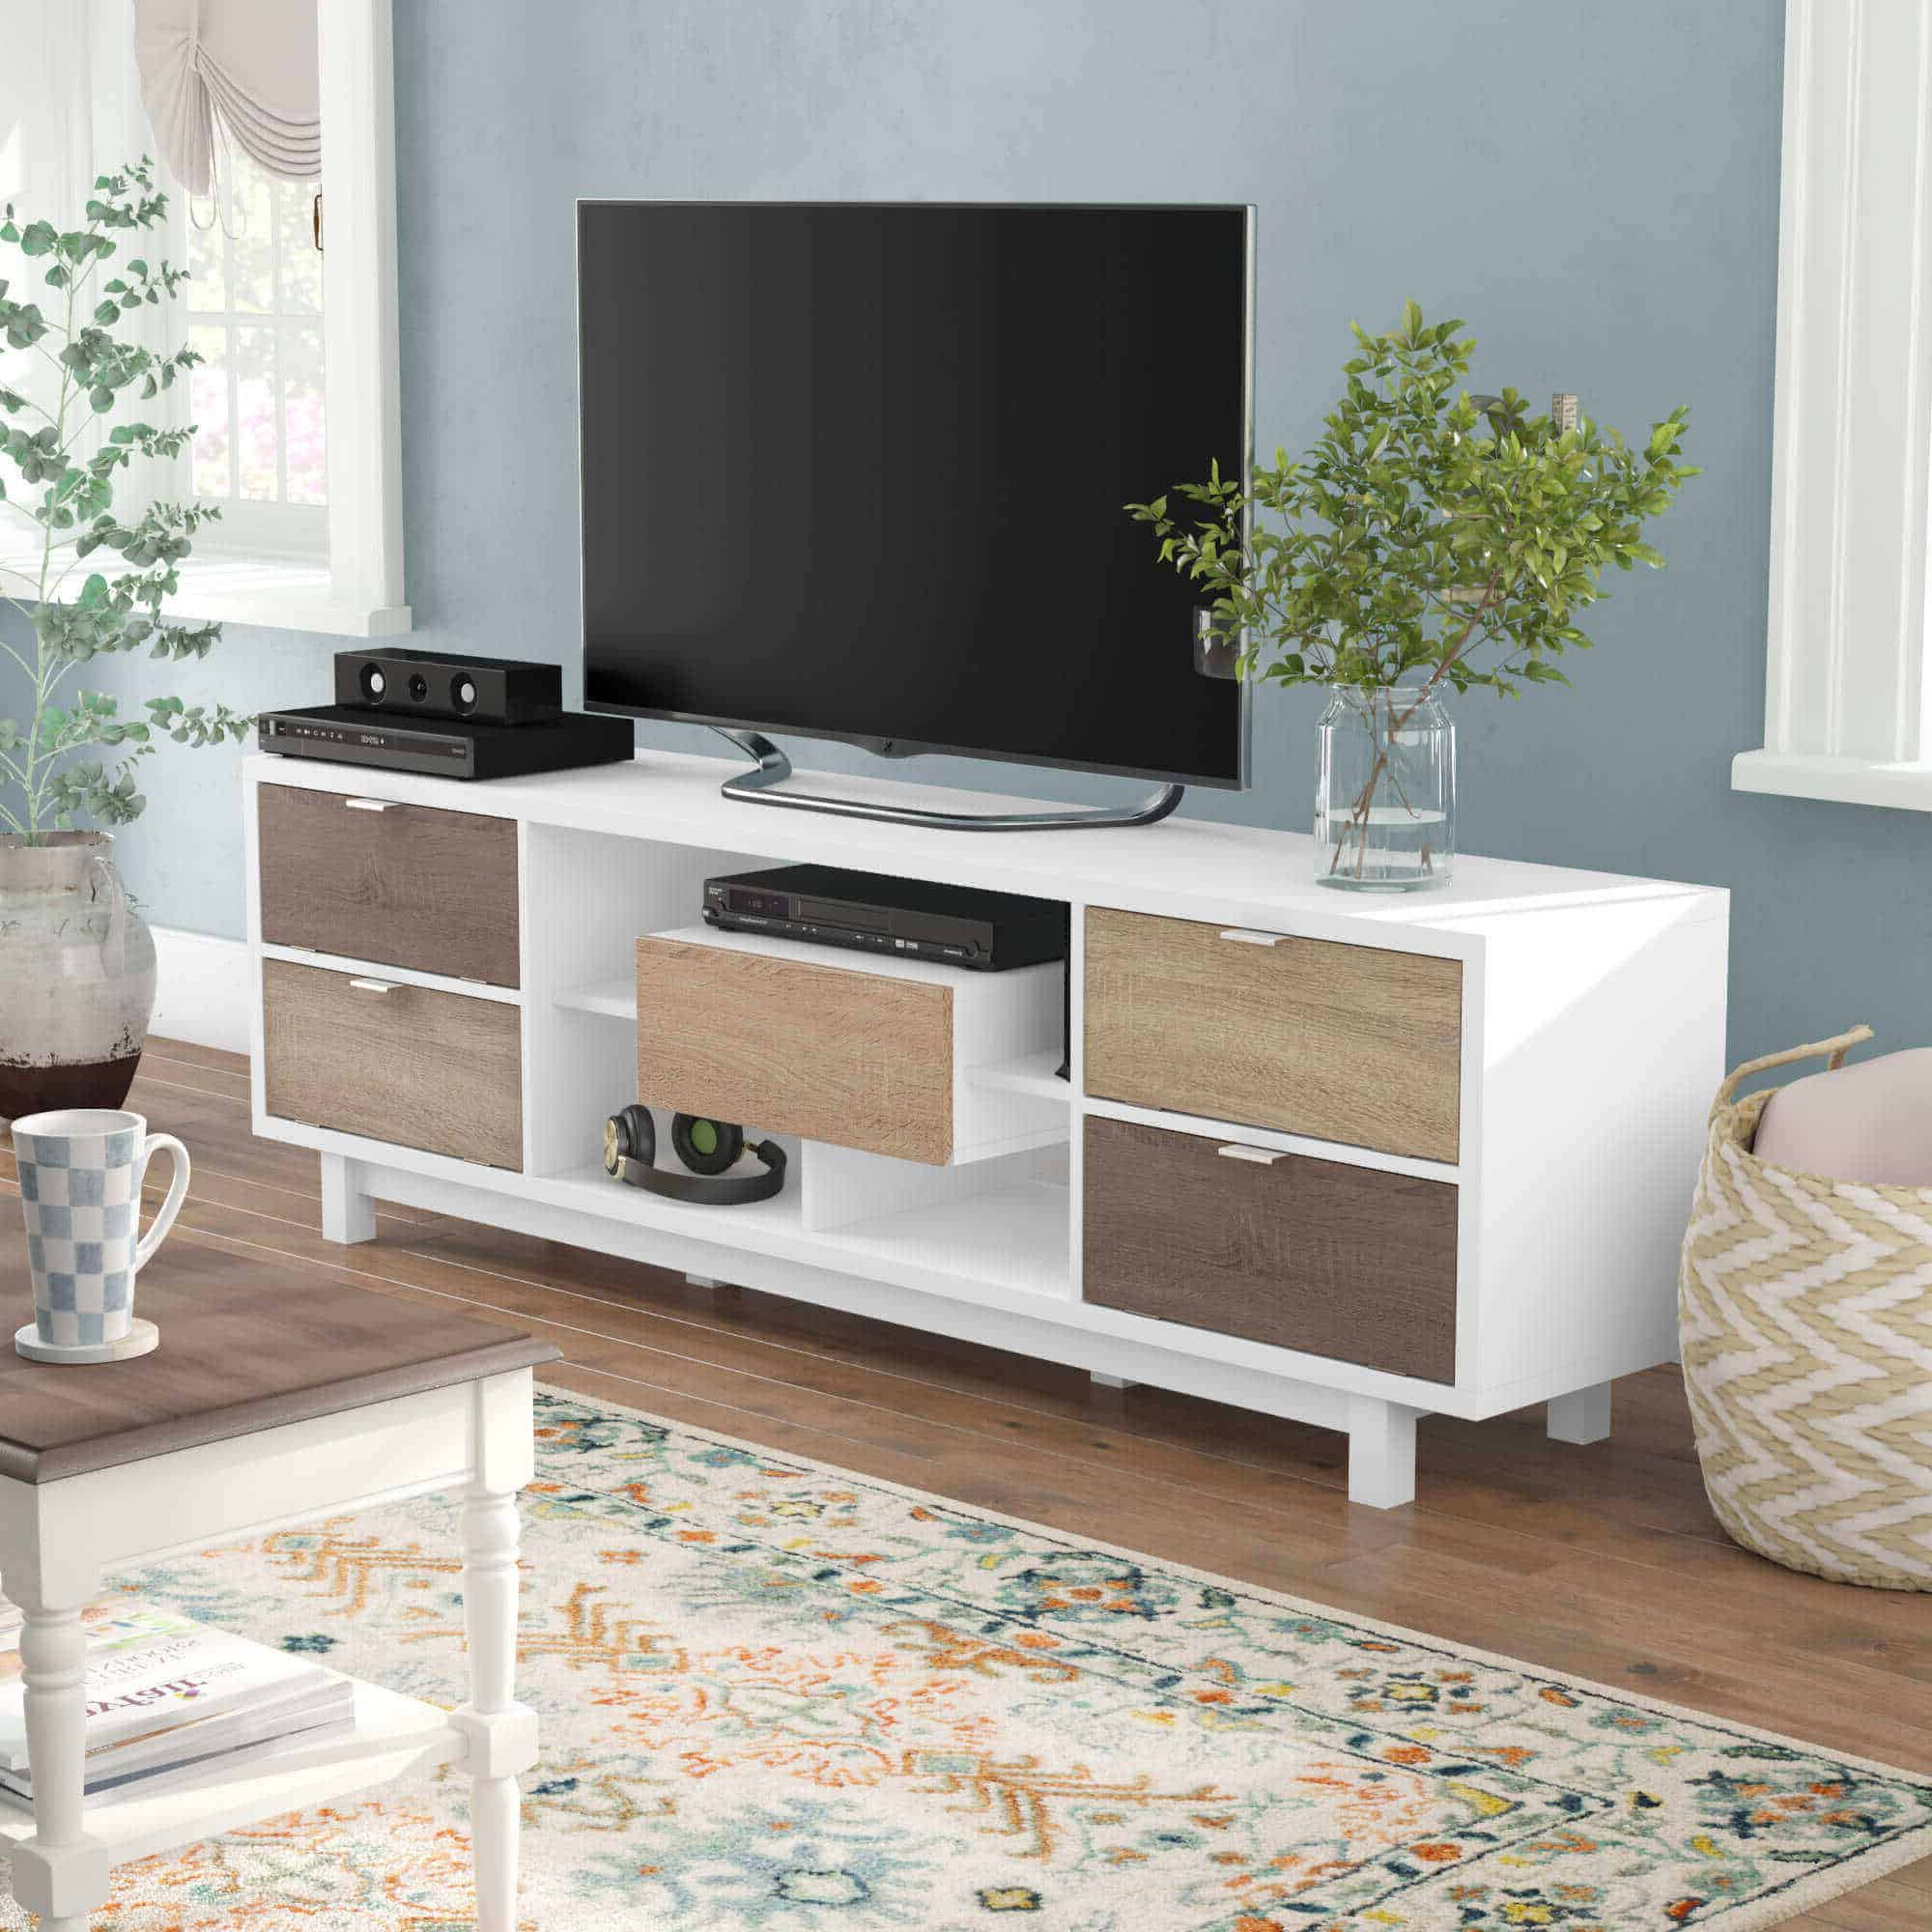 Widely Used Most Beautiful And Incredible Tv Stand Design Ideas With Regard To Modern Black Tabletop Tv Stands (View 1 of 10)